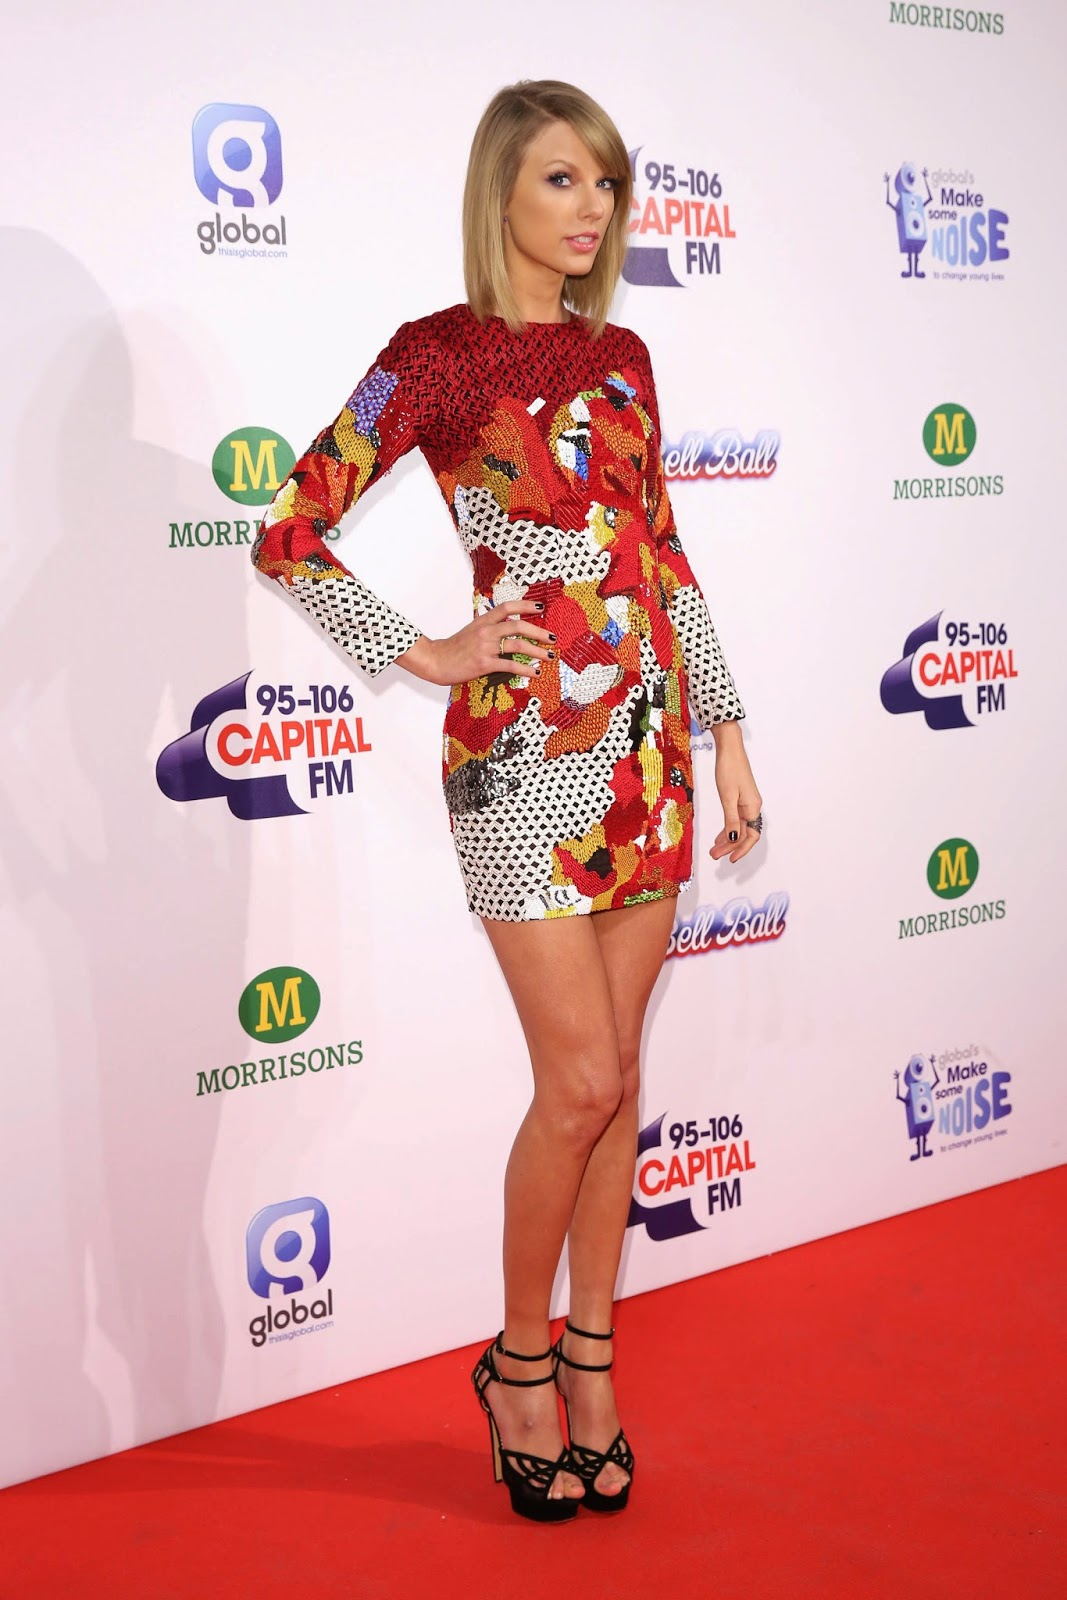 Taylor Swift Very Leggy Wearing Sexy Mini Dress At The Z100s Jingle Ball | Gutter Uncensored